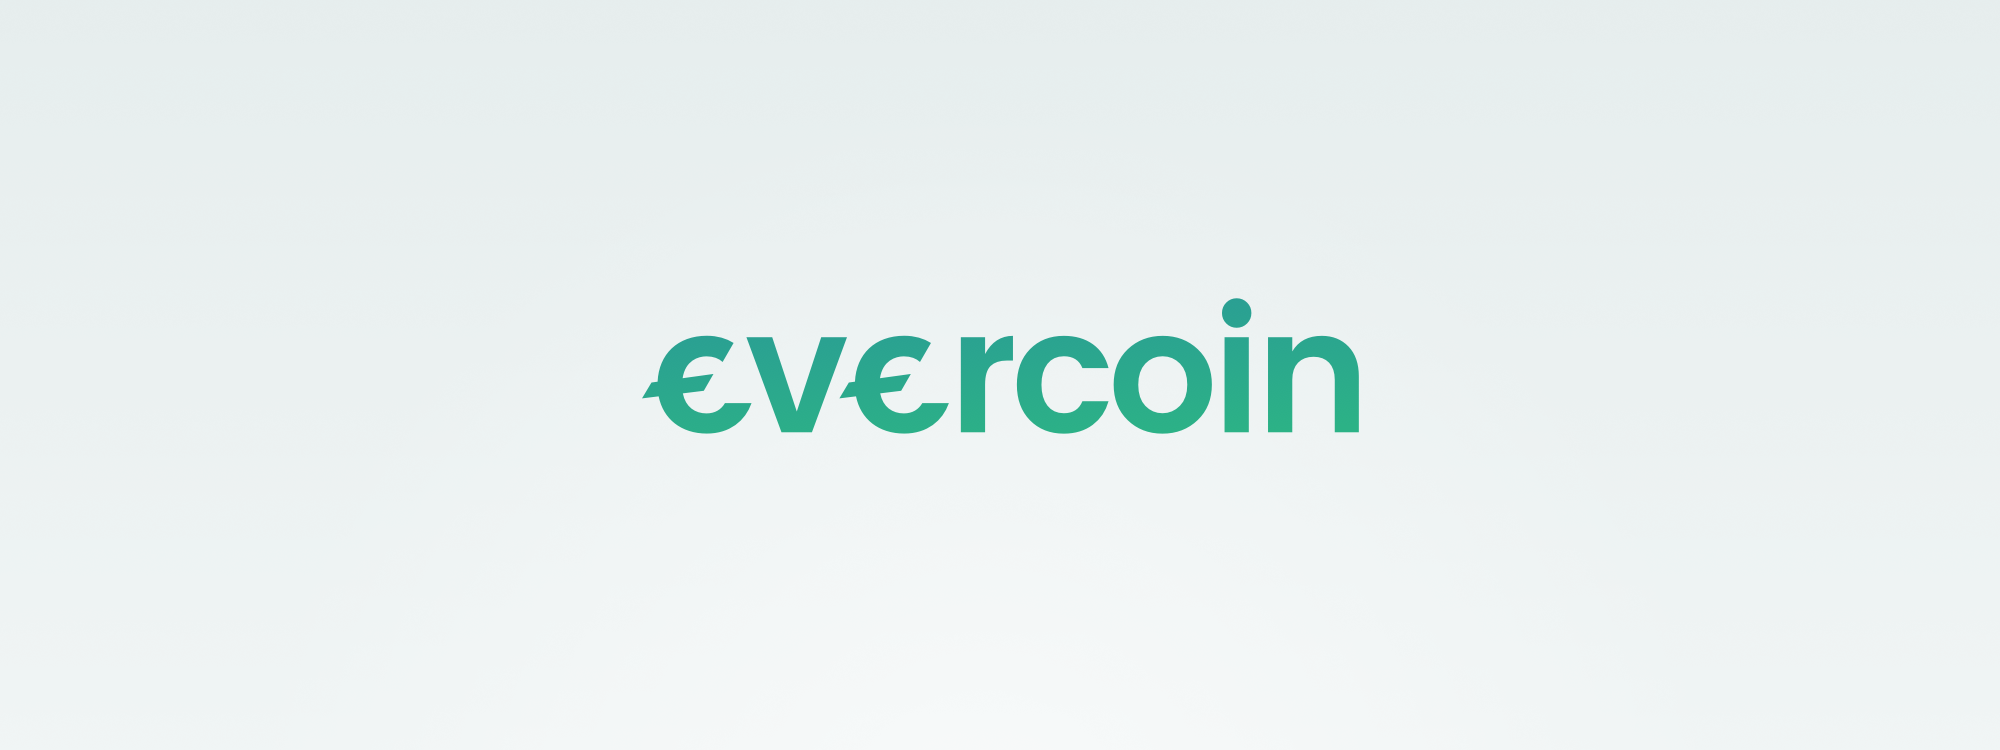 Evercoin is the exchange with the most solid mobile app for both iOS and Android. However it has just average exchange rates and average currency selction.